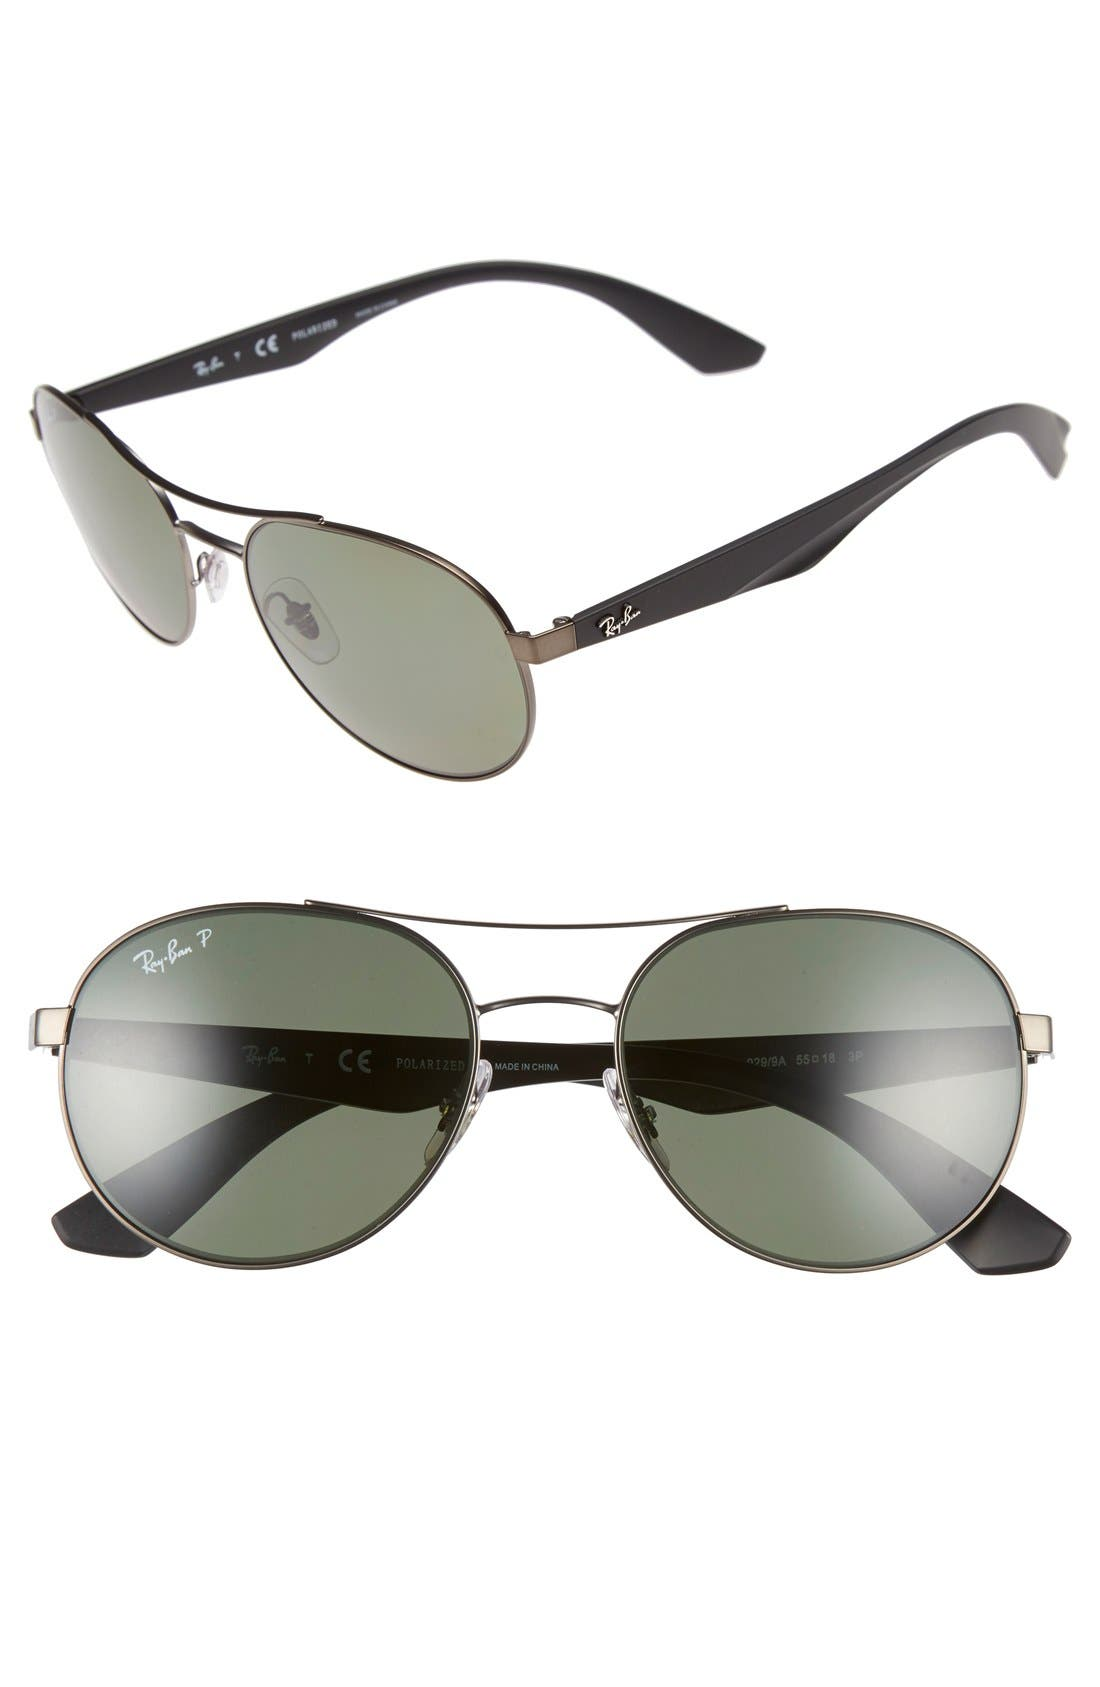 eefe3978938 ... 029 9a 55-18 Sunglasses EAN 8051823445778 product image for Men s Ray-Ban  55mm Polarized Sunglasses - Gunmetal Green